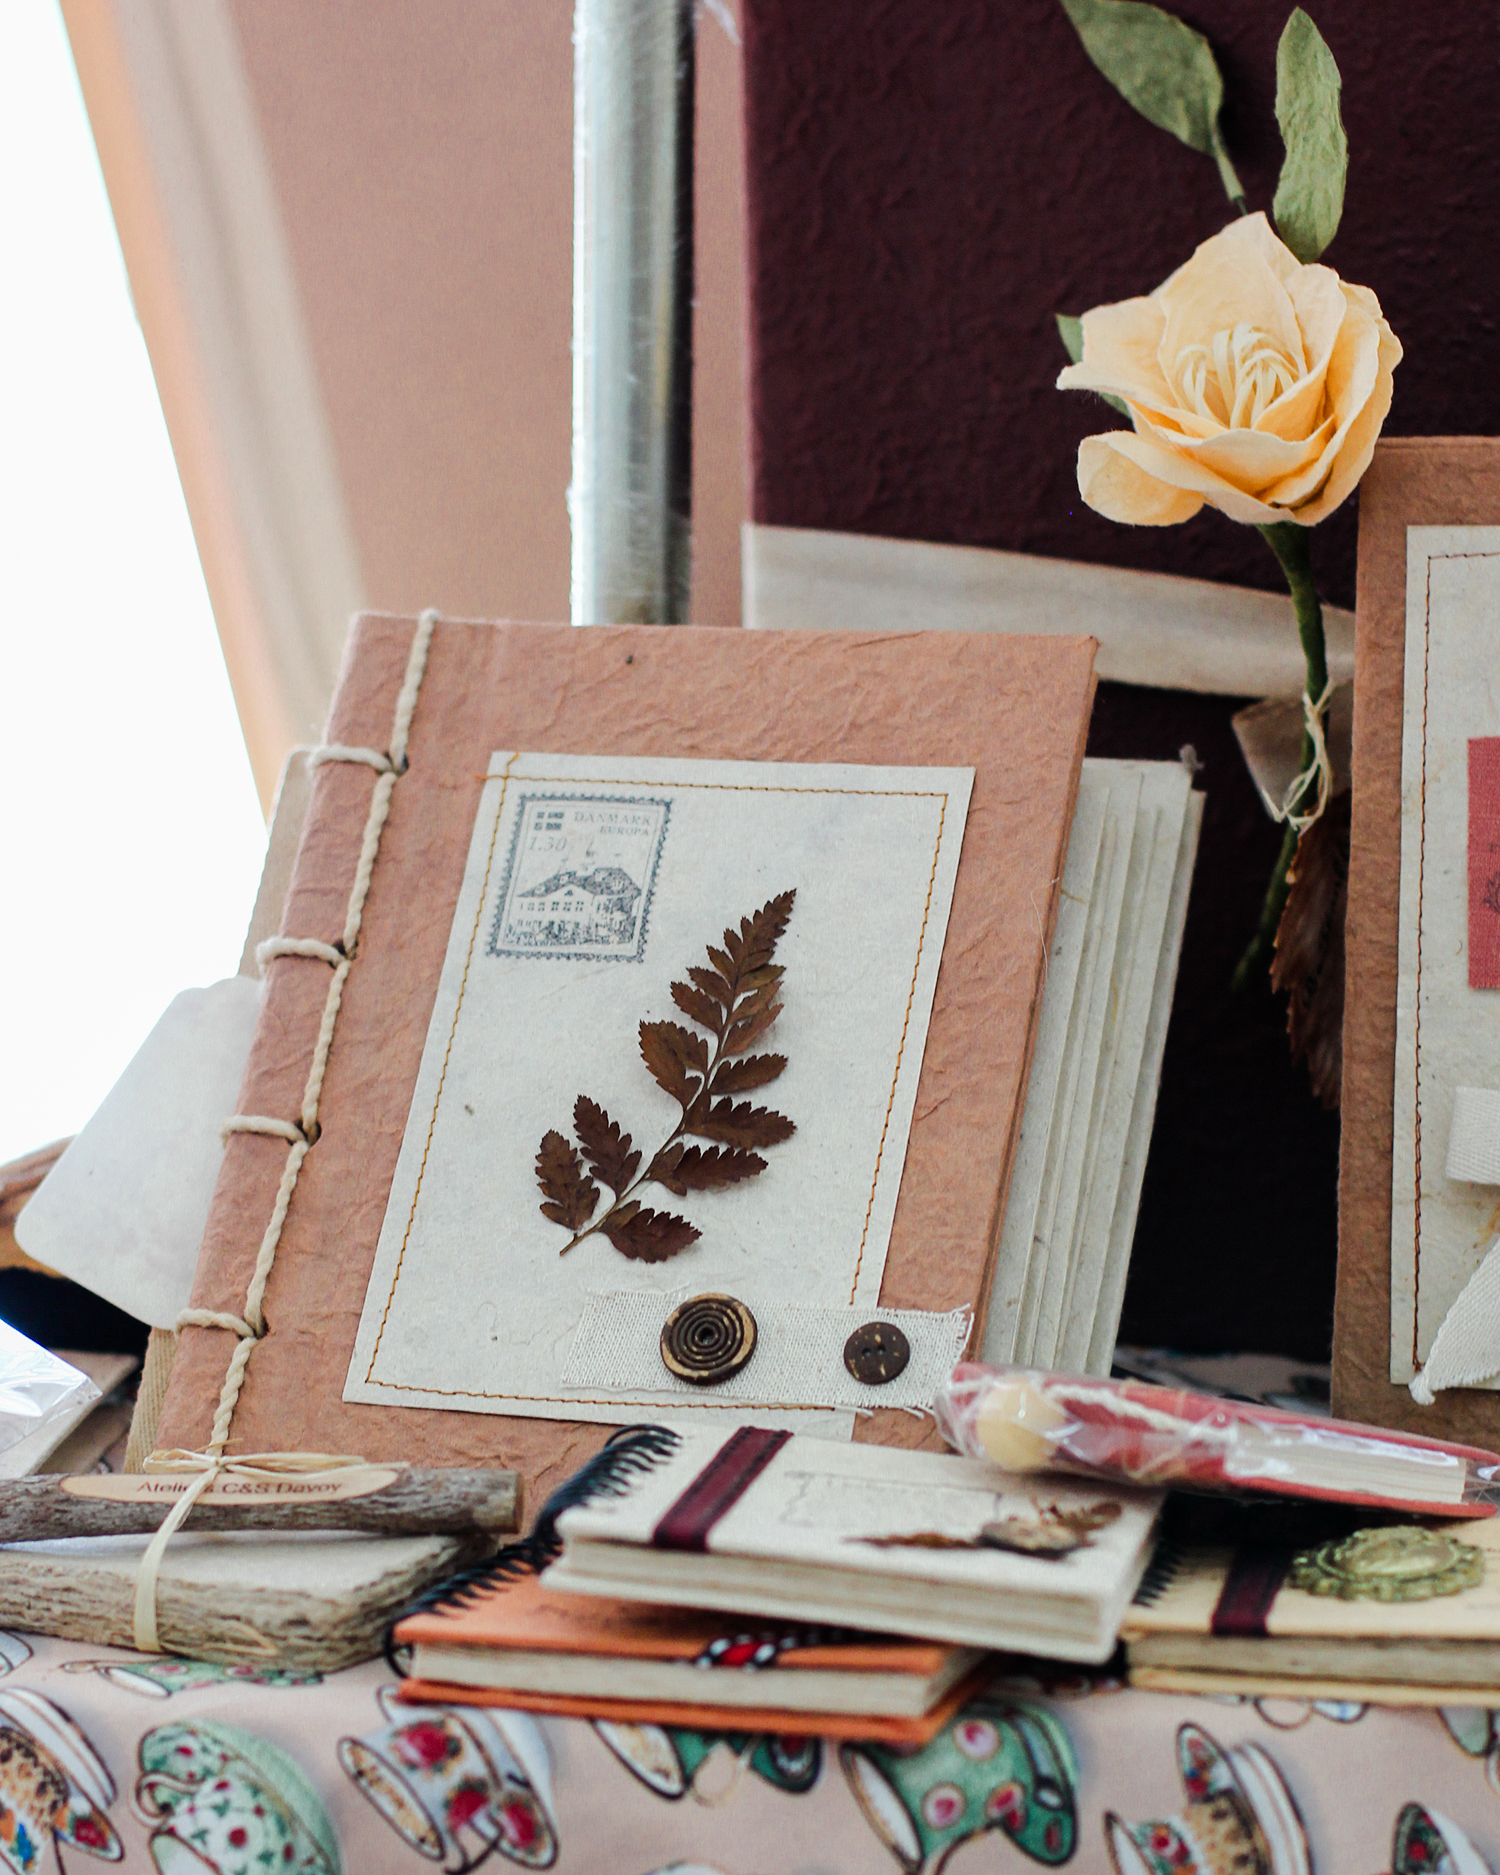 Handmade Mulberry Paper Journal, Vintage Journals | Bloomsday Review